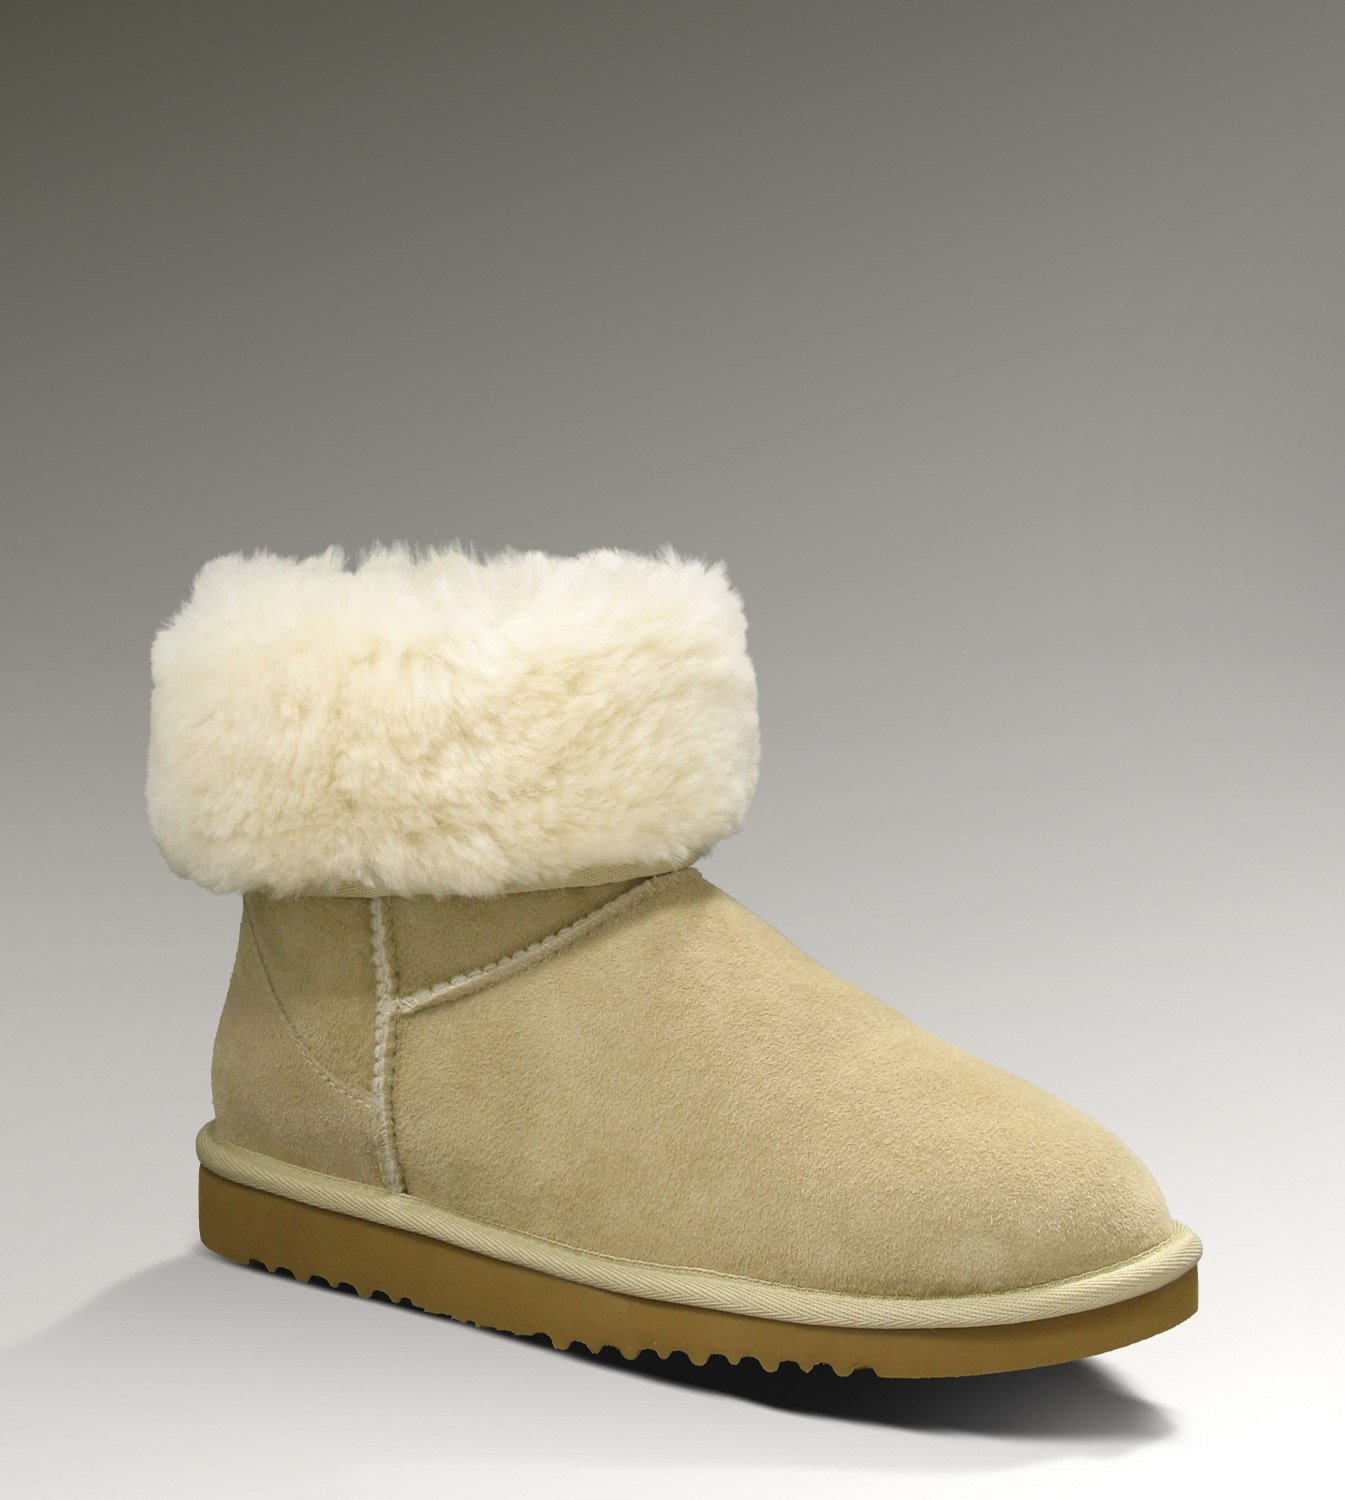 UGG Classic Short 5825 Sand Boots